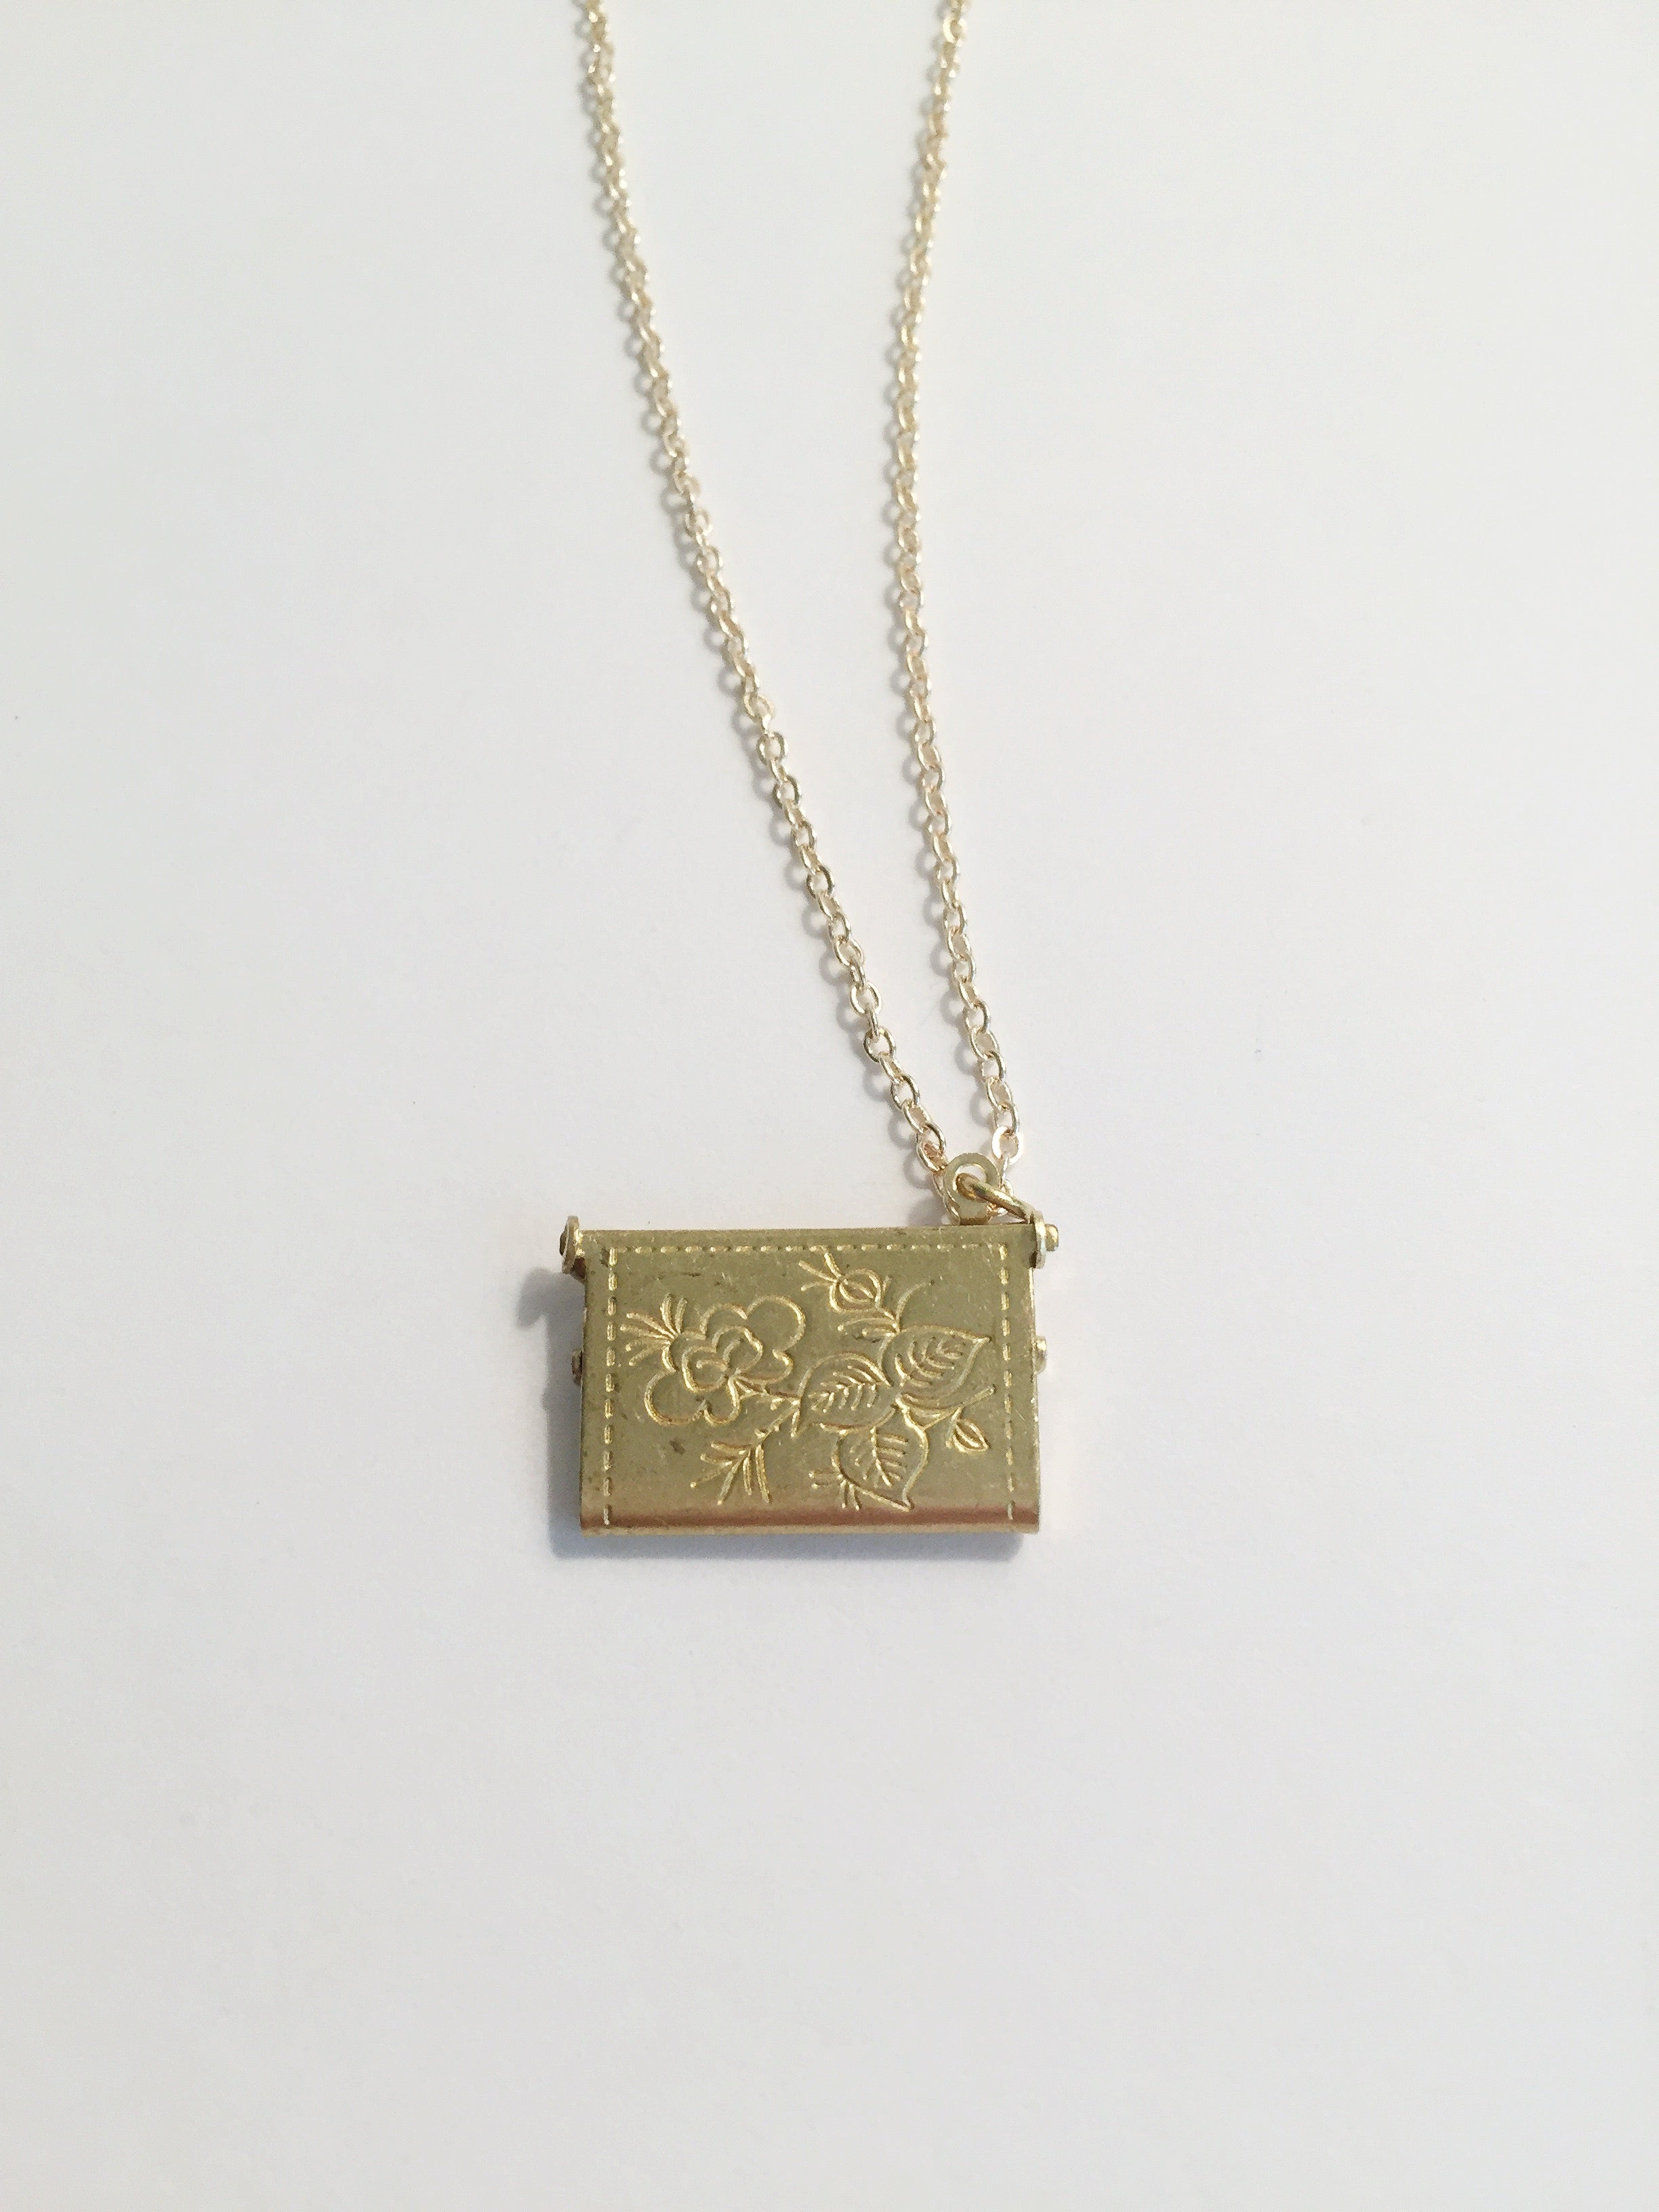 Stocking Stuffer - Love Letter Necklace